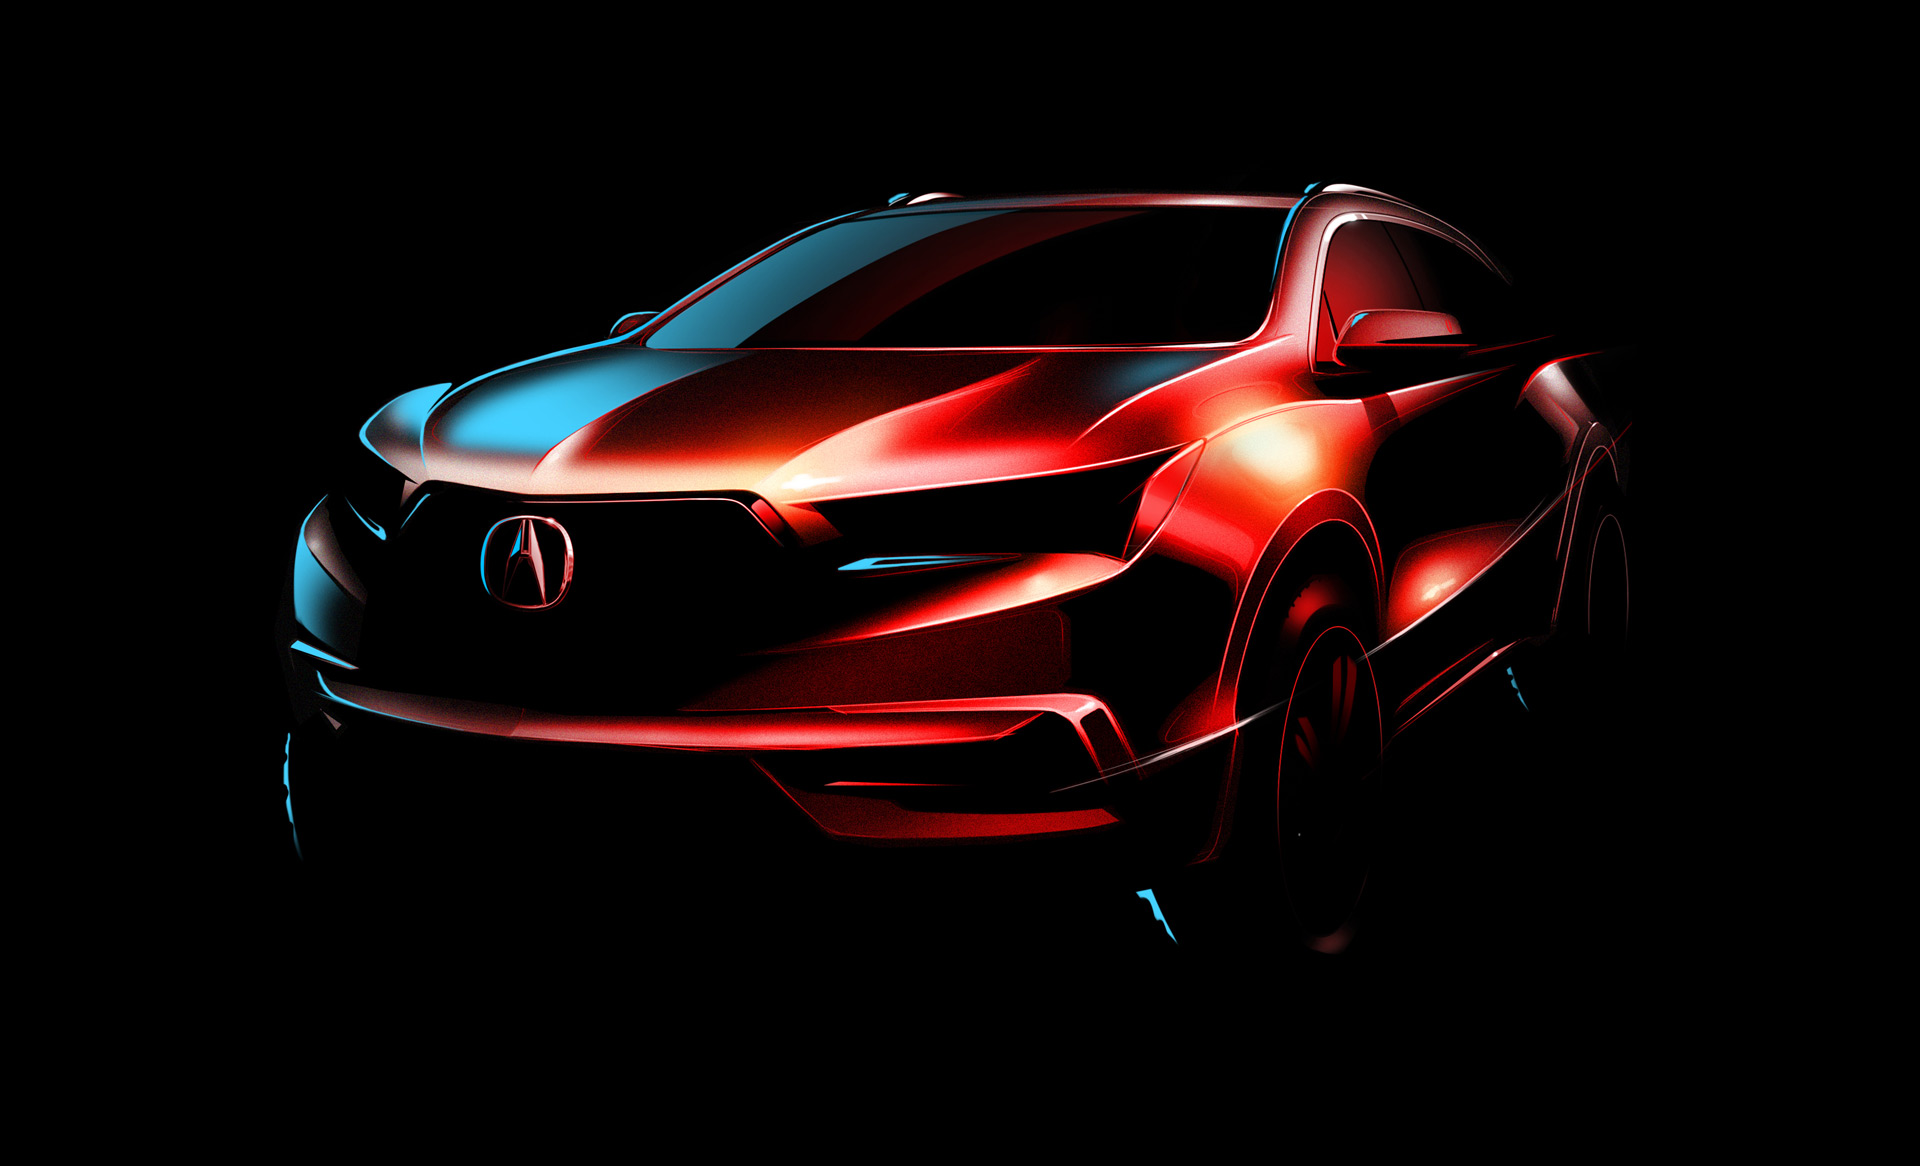 Acura Cdx as well Acura Rlx additionally Acura Rlx in addition New Honda Cr V further Acura Mdx Sh Awd Front Interior. on acura mdx 2016 2017 redesign